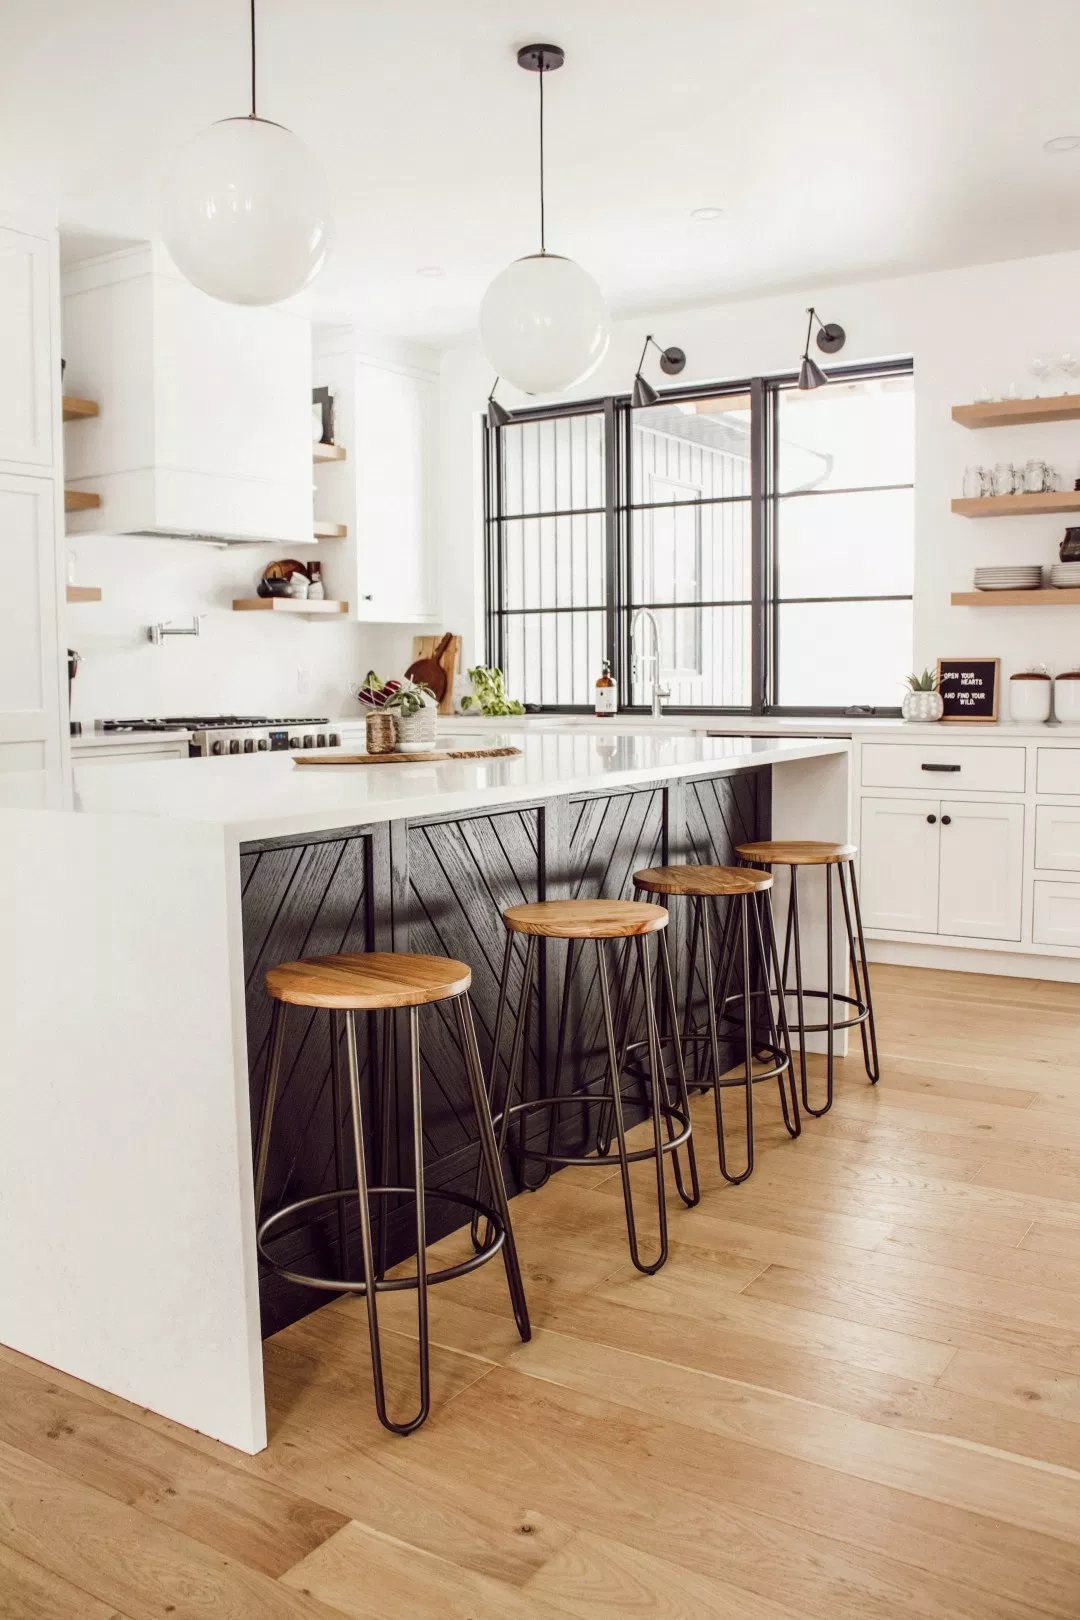 Best Seat In The Kitchen New Structube Stools Modern Kitchen Stools Kitchen Stools Kitchen Counter Stools